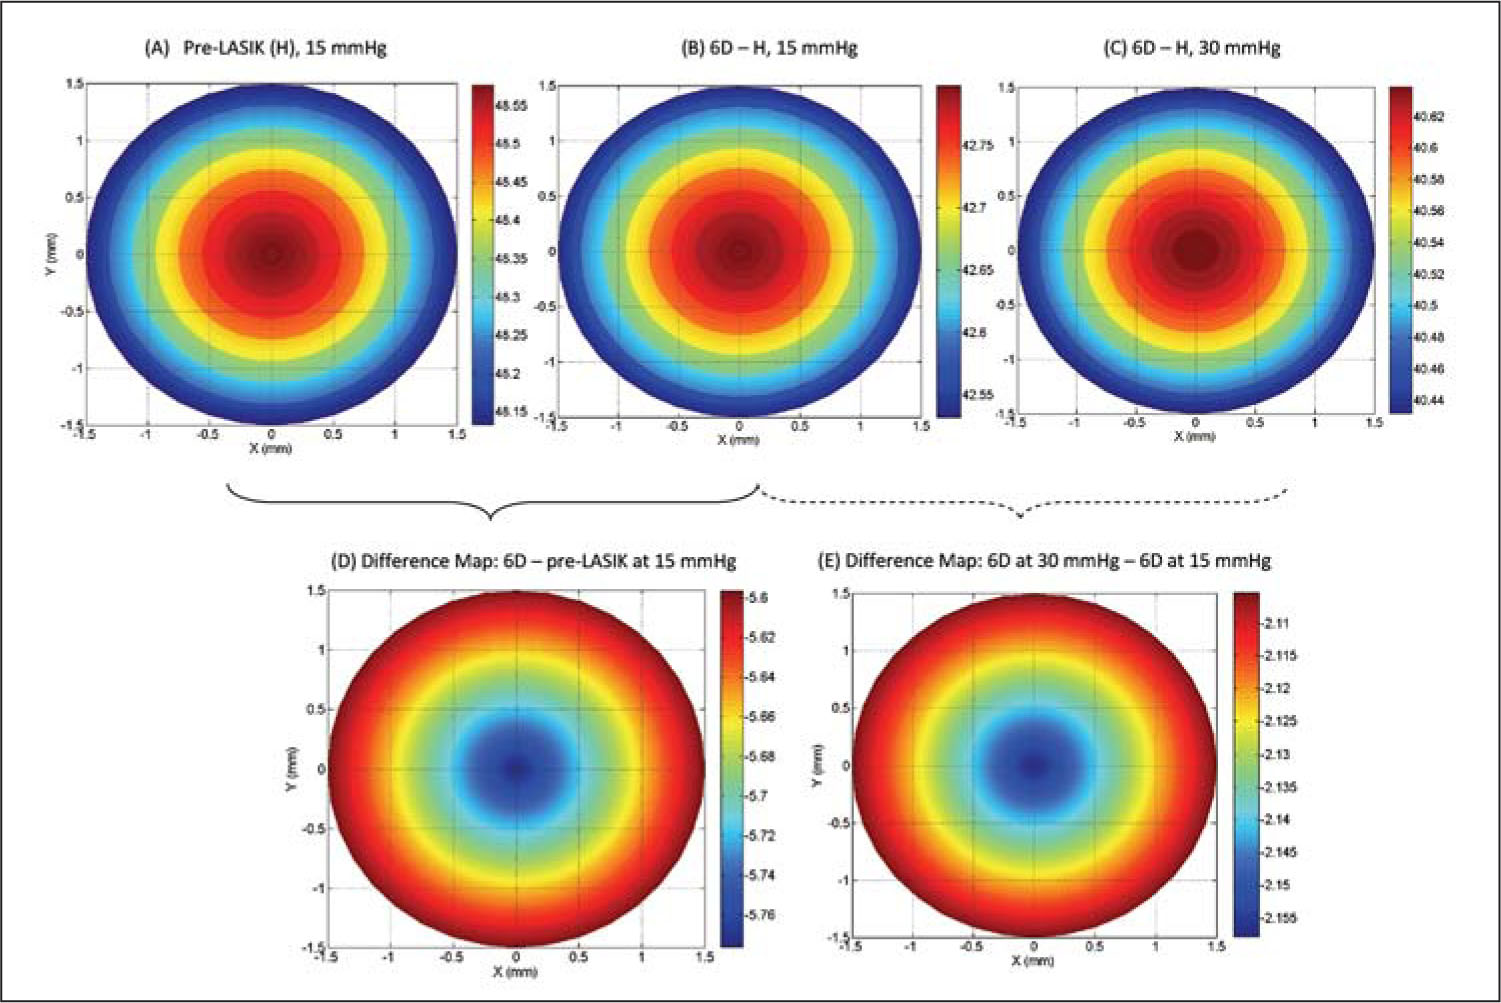 Tangential Power Maps for Preoperative LASIK (H), 6D-H at 15 and 30 mmHg, and Their Difference Map (postoperative–Preoperative LASIK). Compared to Weaker Cornea and Postoperative LASIK, the Stiffer Cornea (H) Flattens Less than the Weaker Cornea as the Intraocular Pressure Increases from 15 to 30 mmHg.